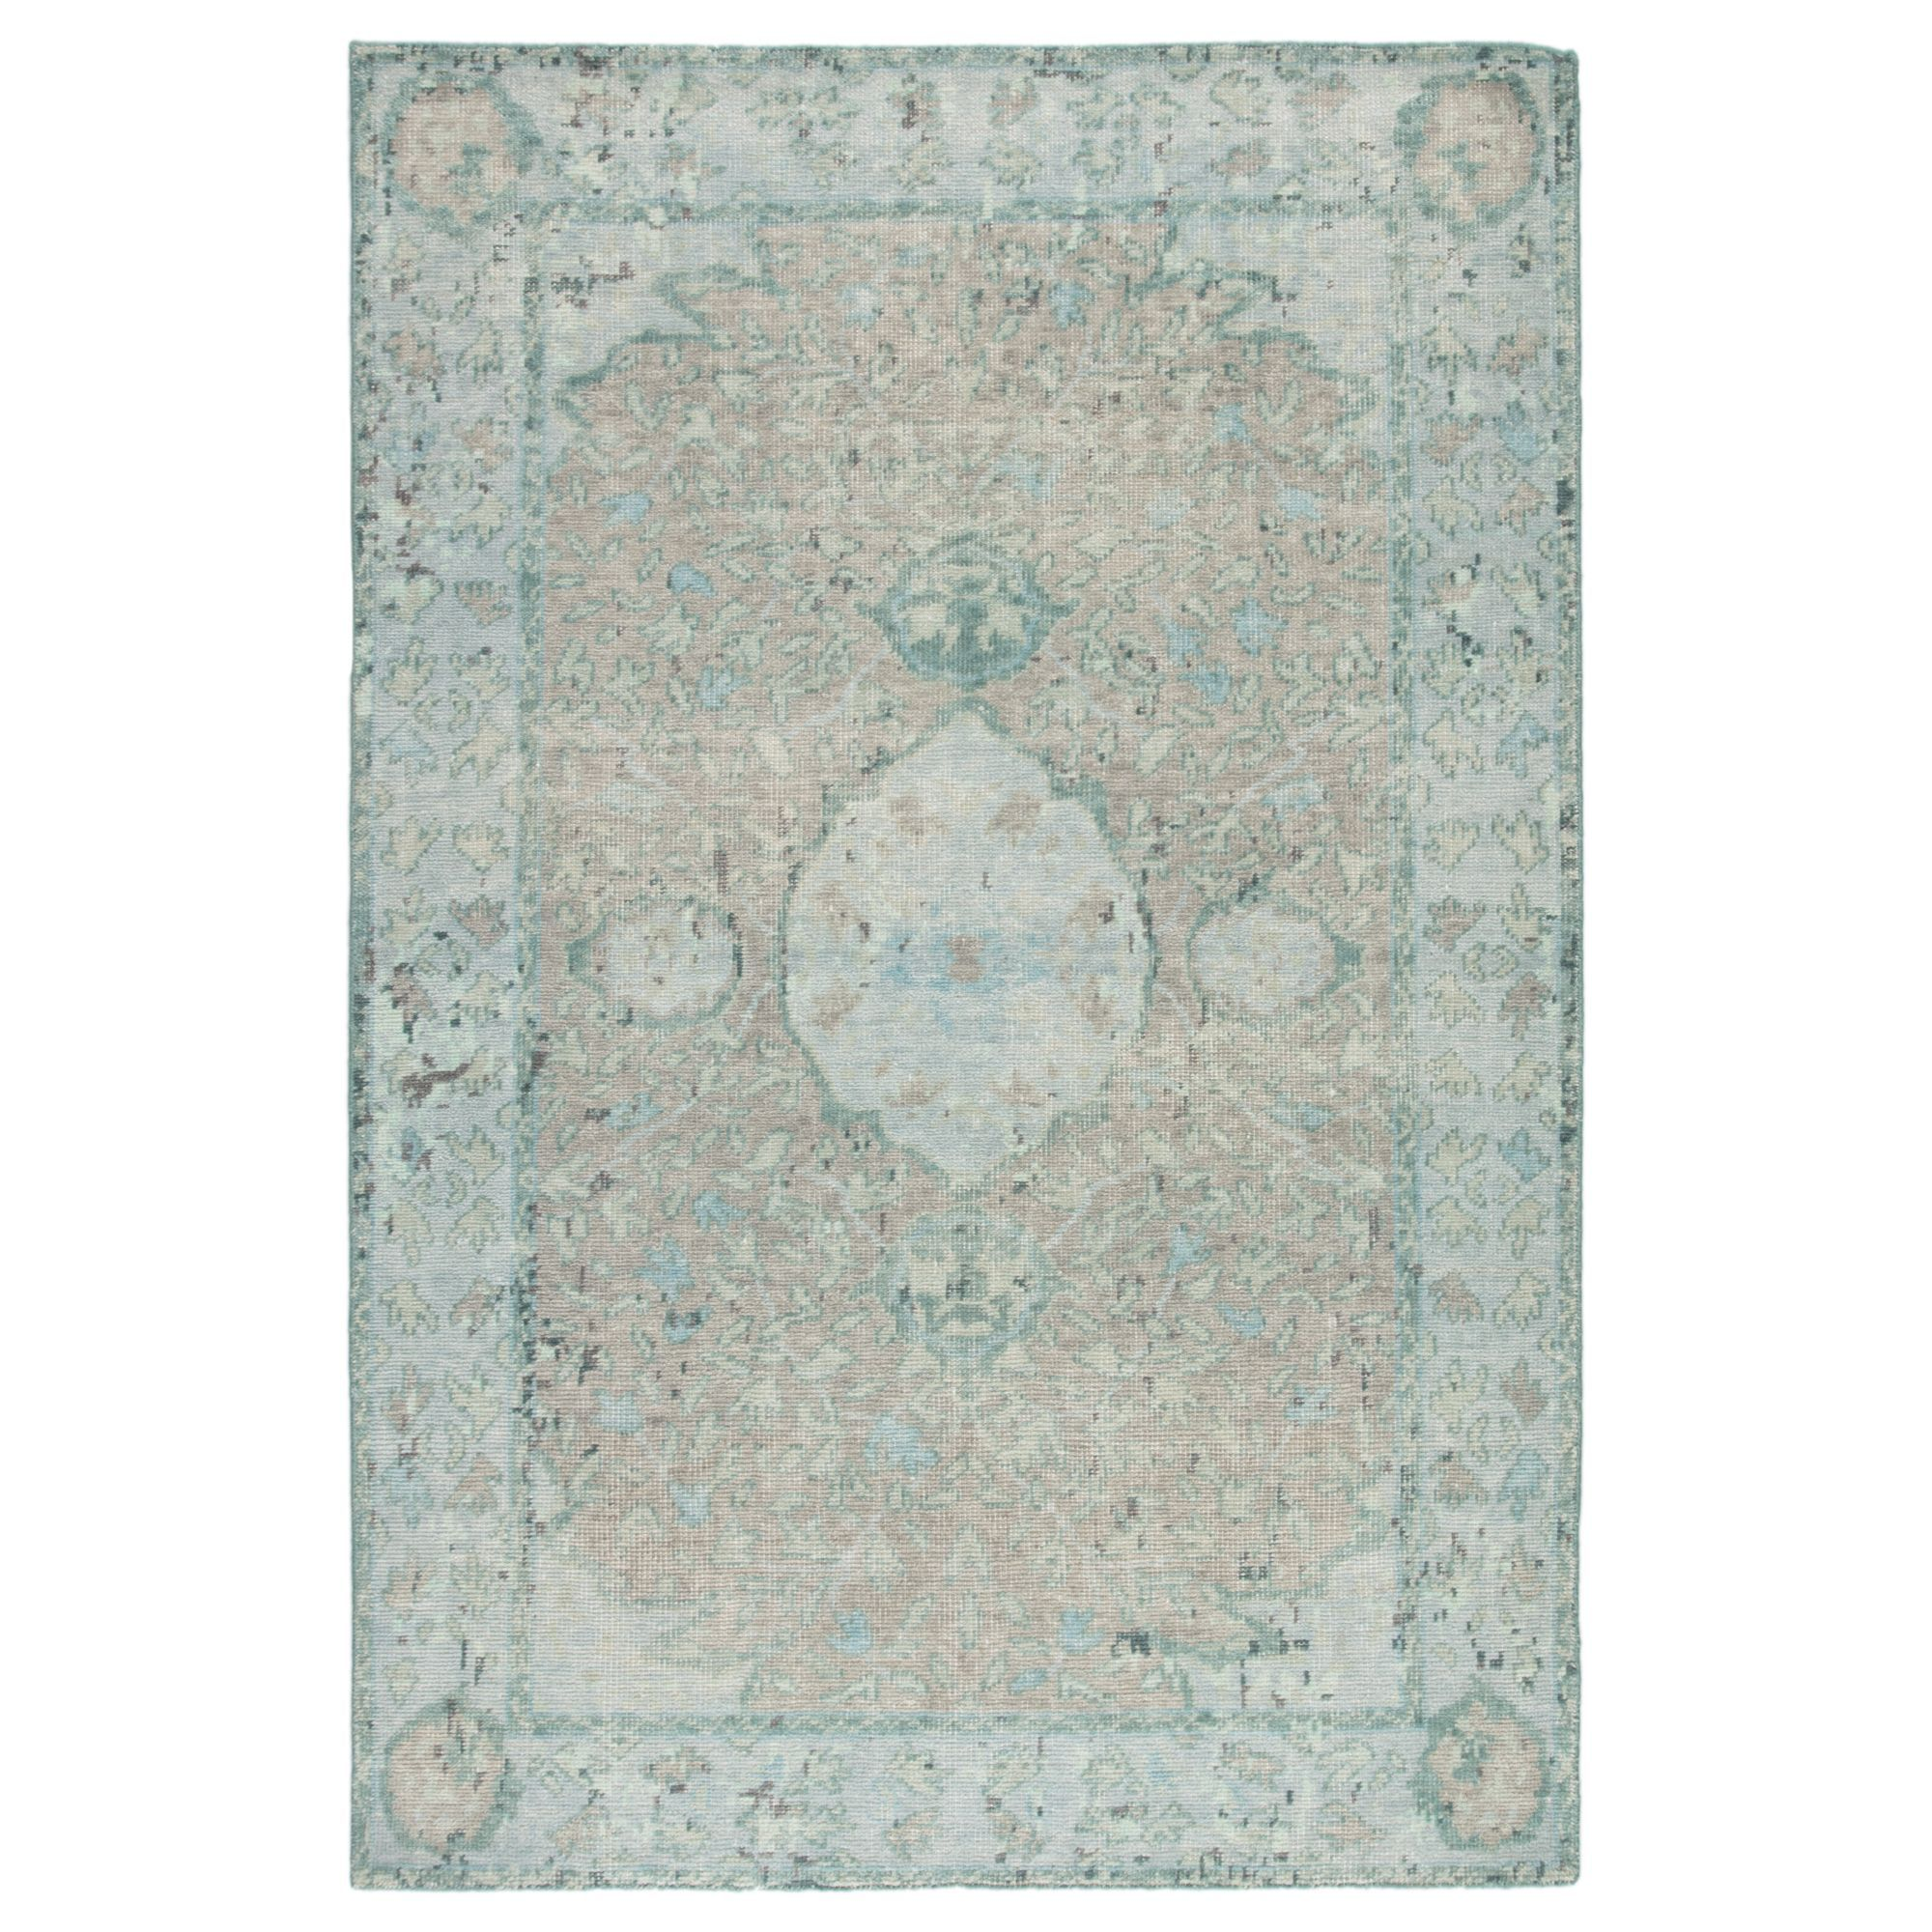 12 X 15 Aqua Blue And Beige Traditional Hand Knotted Rectangular